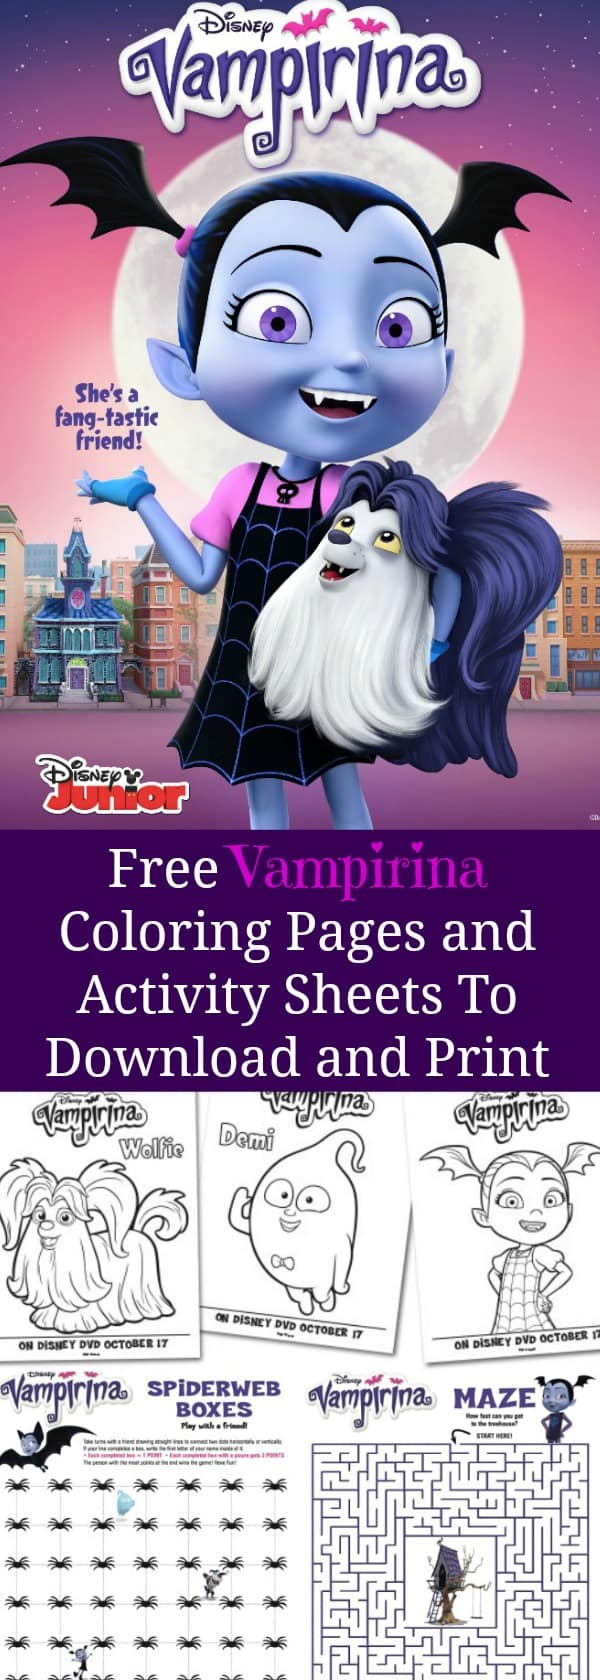 Free Vampirina Coloring Pages and Activity Sheets To Download and Print